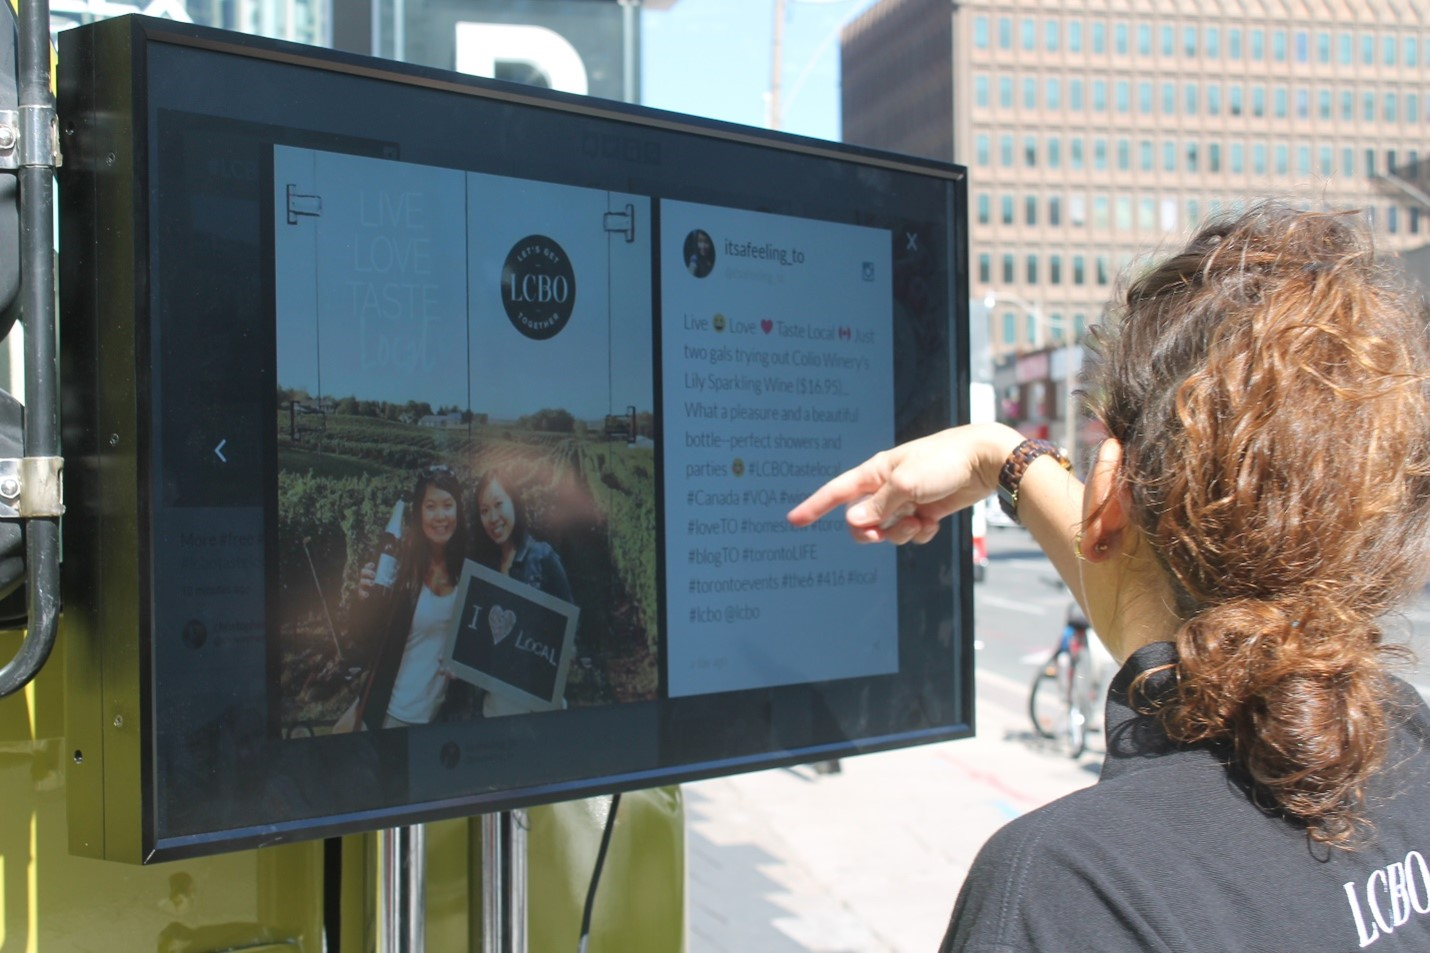 Mobile Experiential Marketing Trends Toronto LCBO